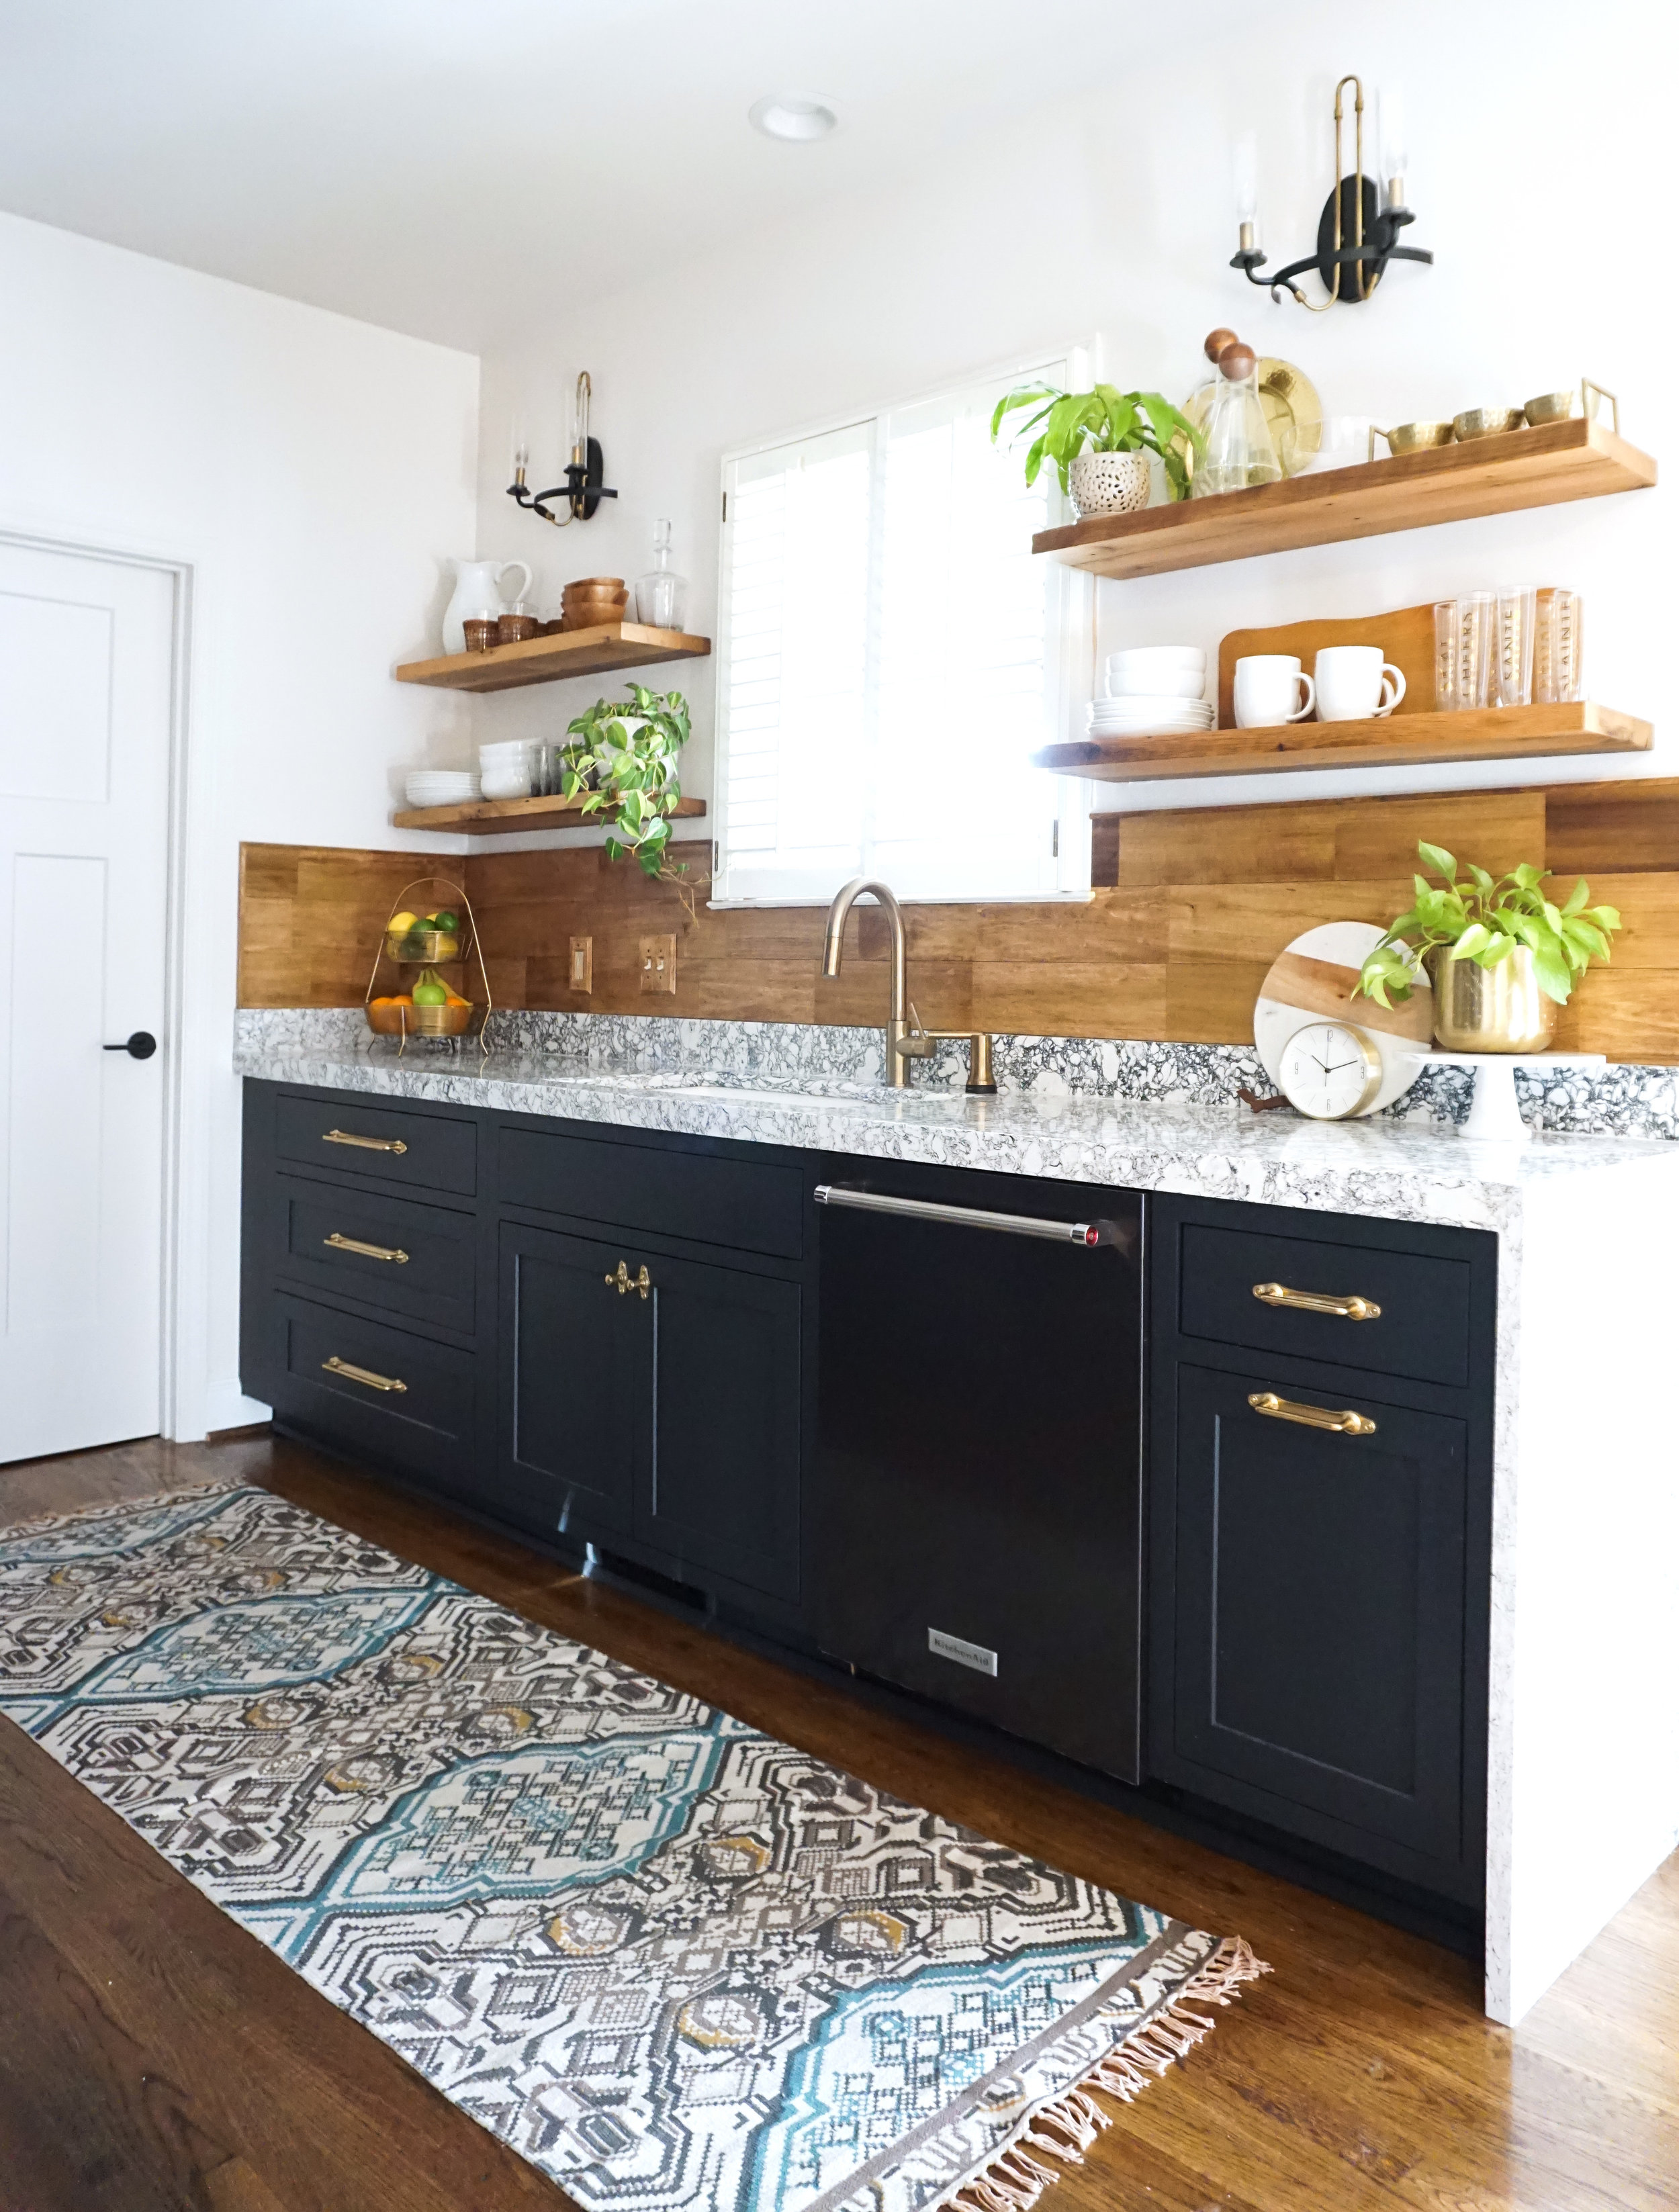 I opted for drawers in my lower cabinets whereever I could because they are so much easier to keep organized than door base cabinets. The drawers make for easy accessibility to pots, pans, cutting boards, etc. Pulls and knobs are from Rejuvenation.